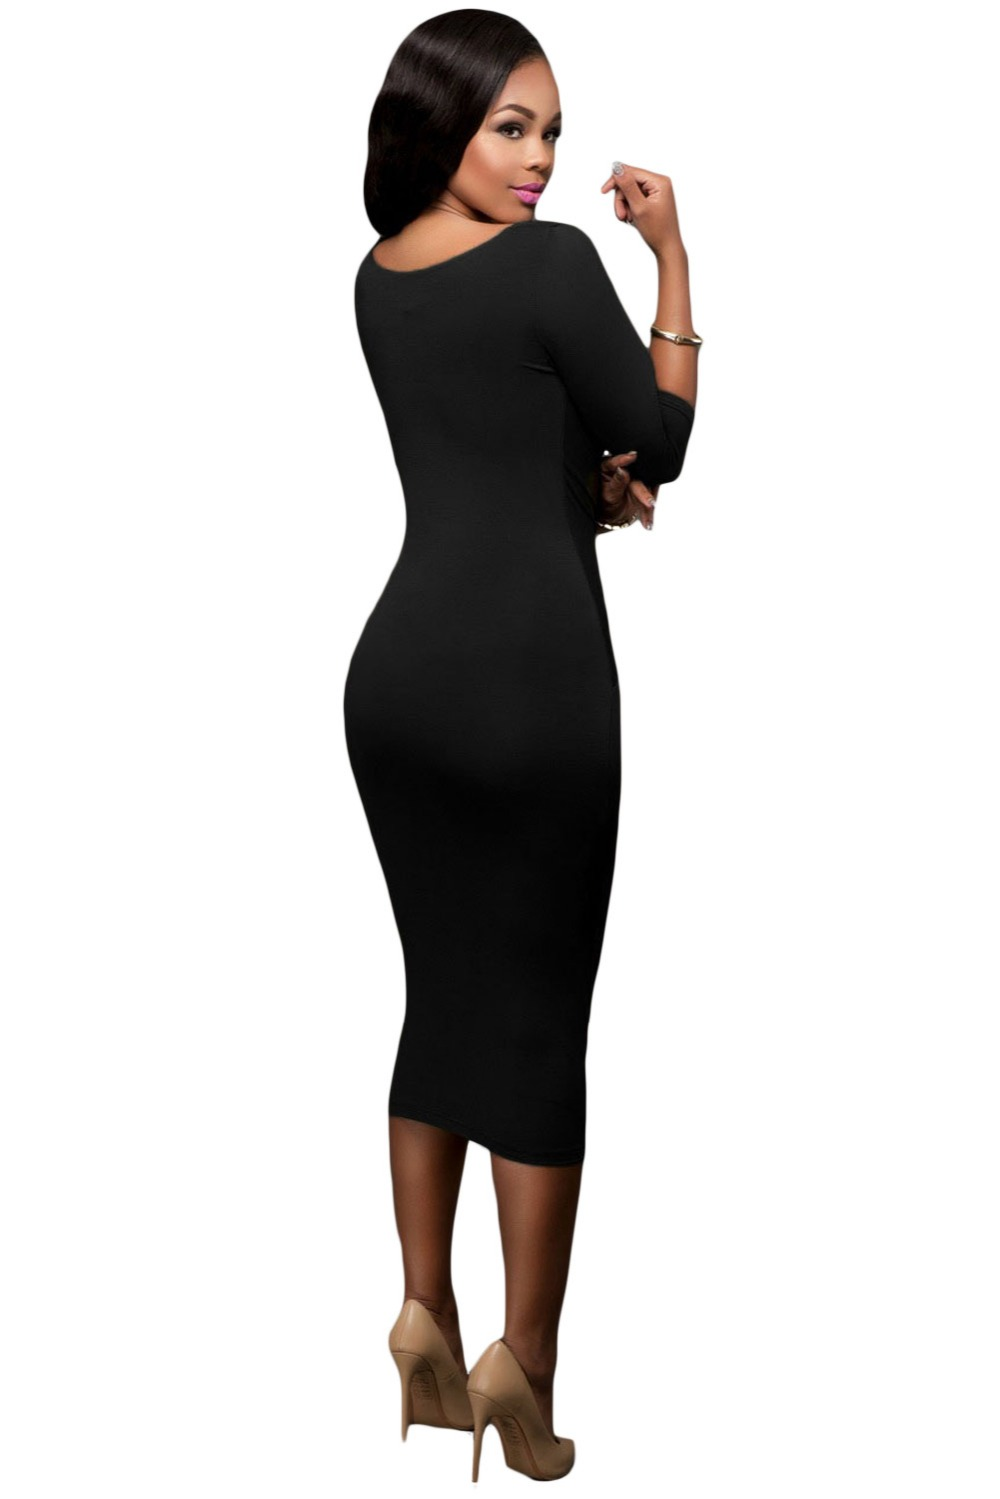 23d64b6f175 Dear Lover Fall 2016 Women Clothes Office Ladies Black Two way V neck  Bodycon Midi Dress Ropa Mujer Vestidos de Inverno LC61204-in Dresses from  Women's ...